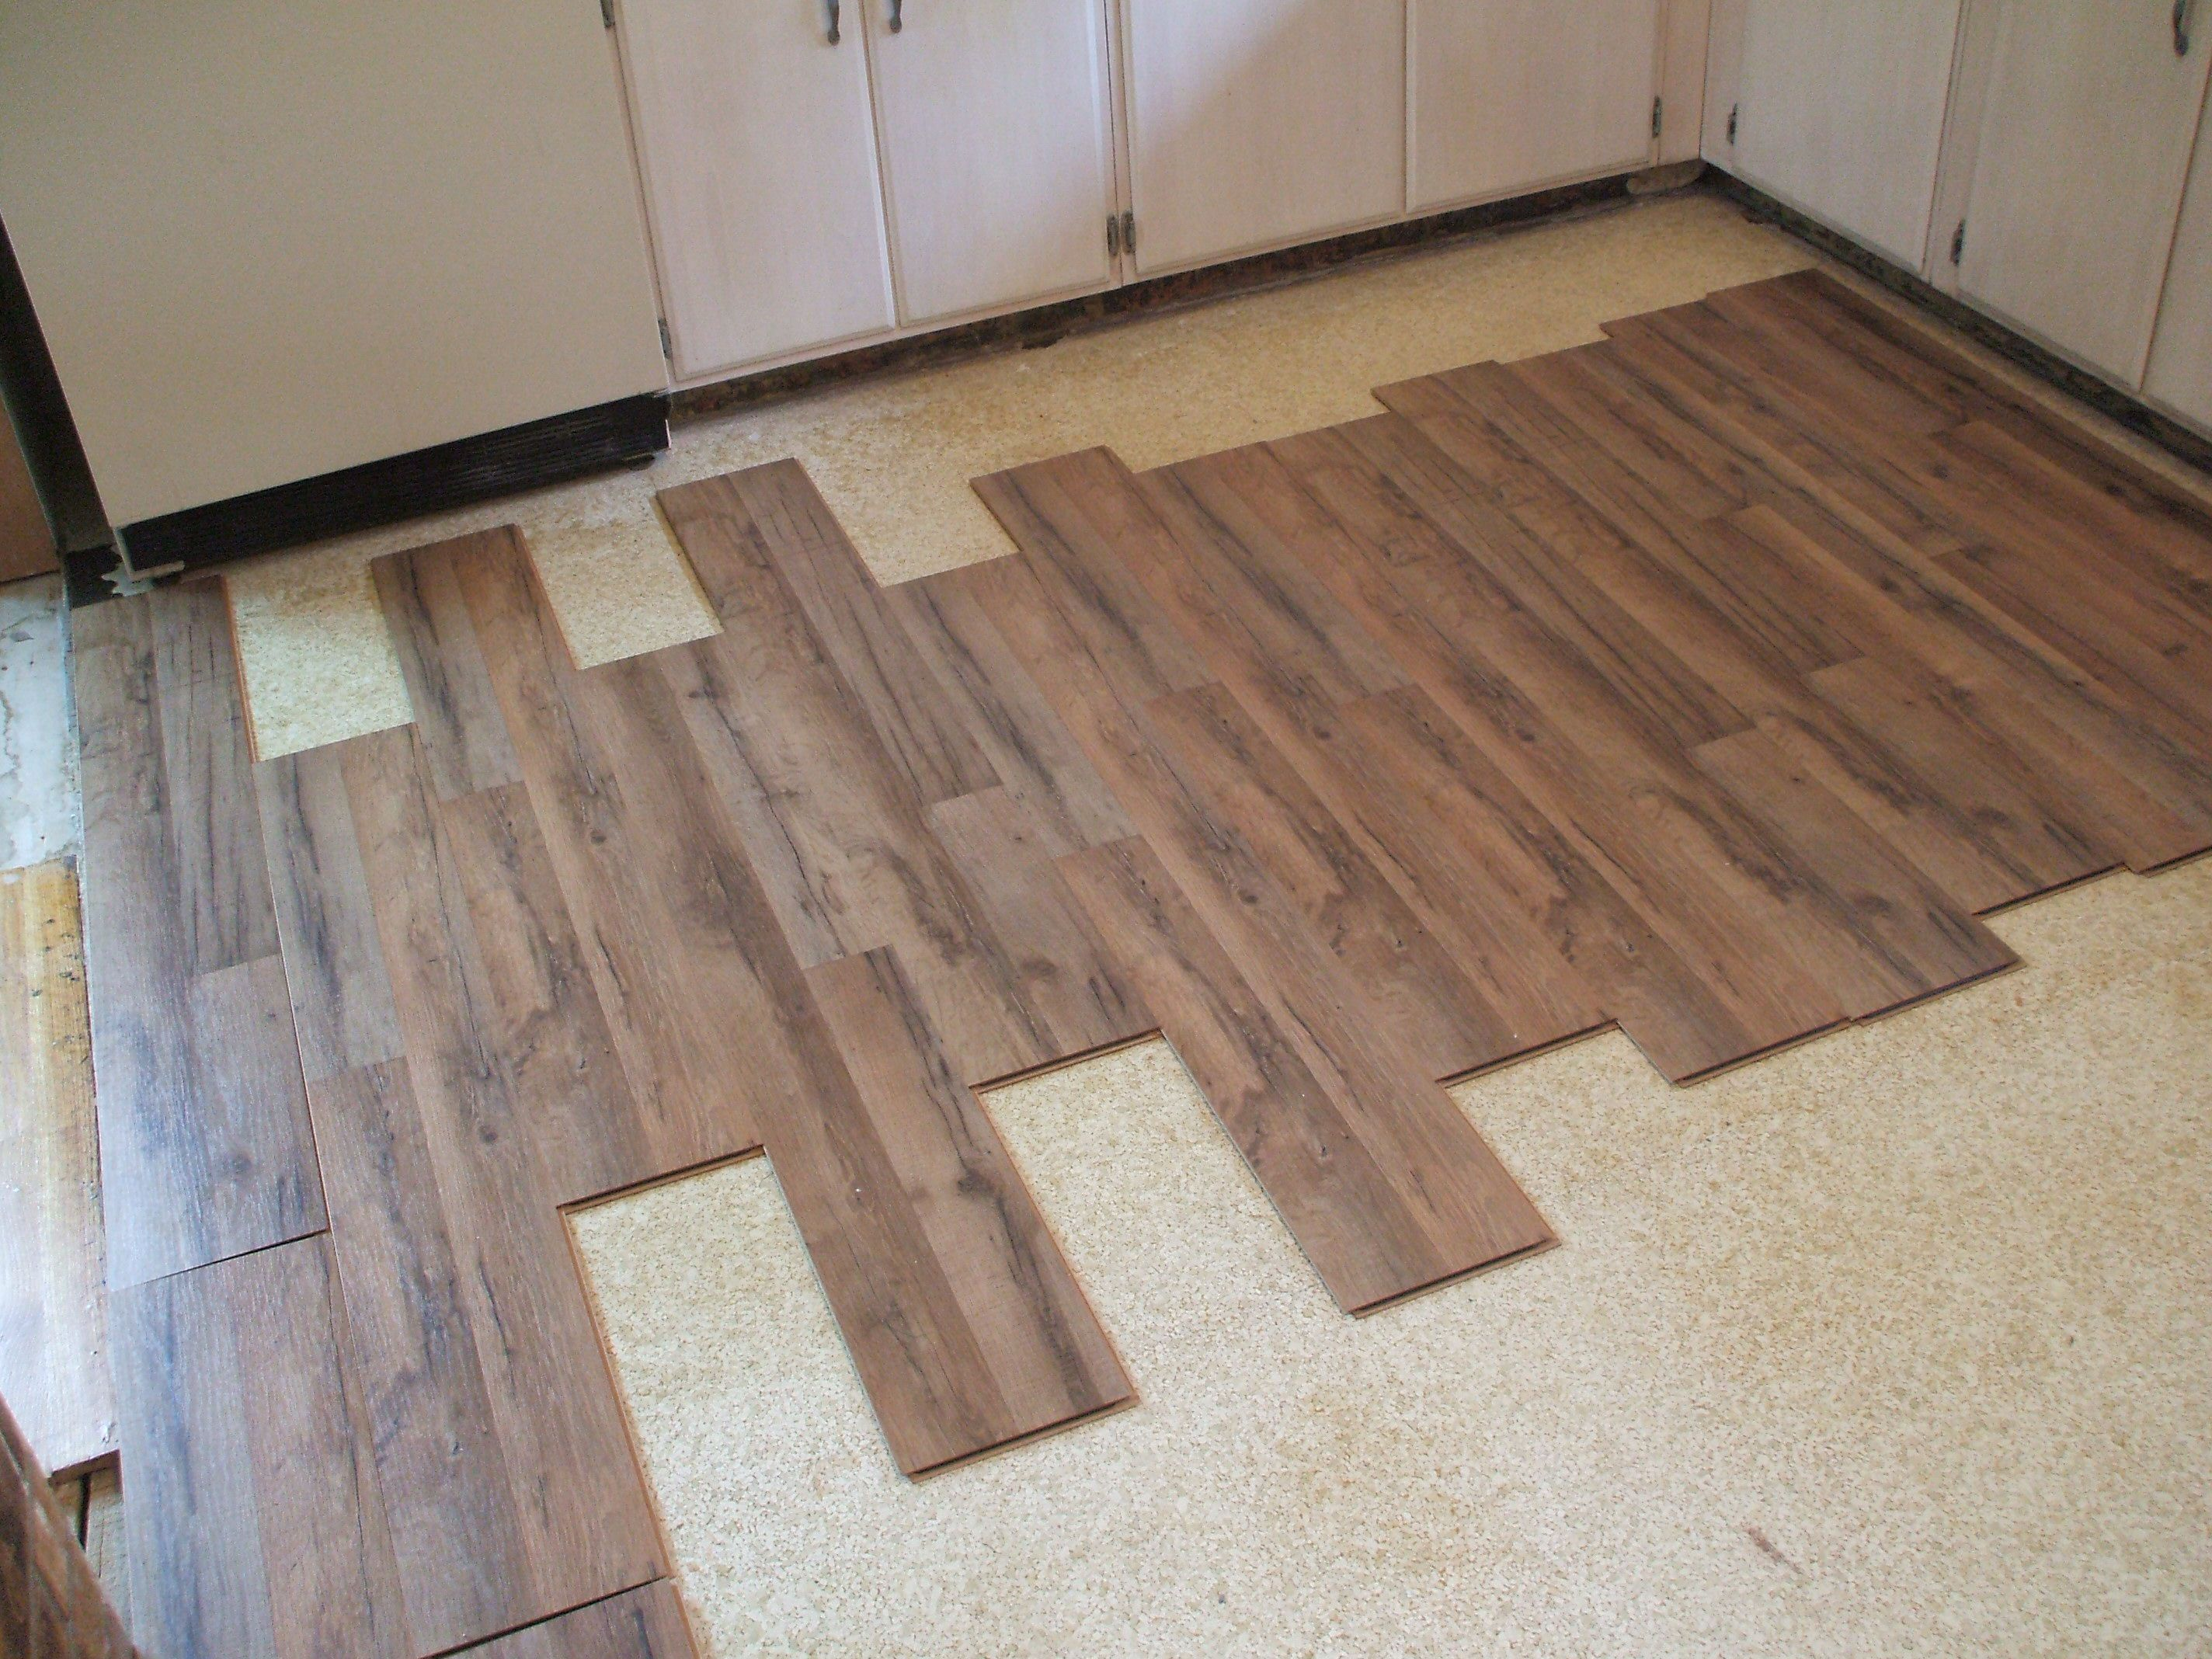 Uncategorized Installing Laminate Wood Flooring how to lay laminate flooring in one day